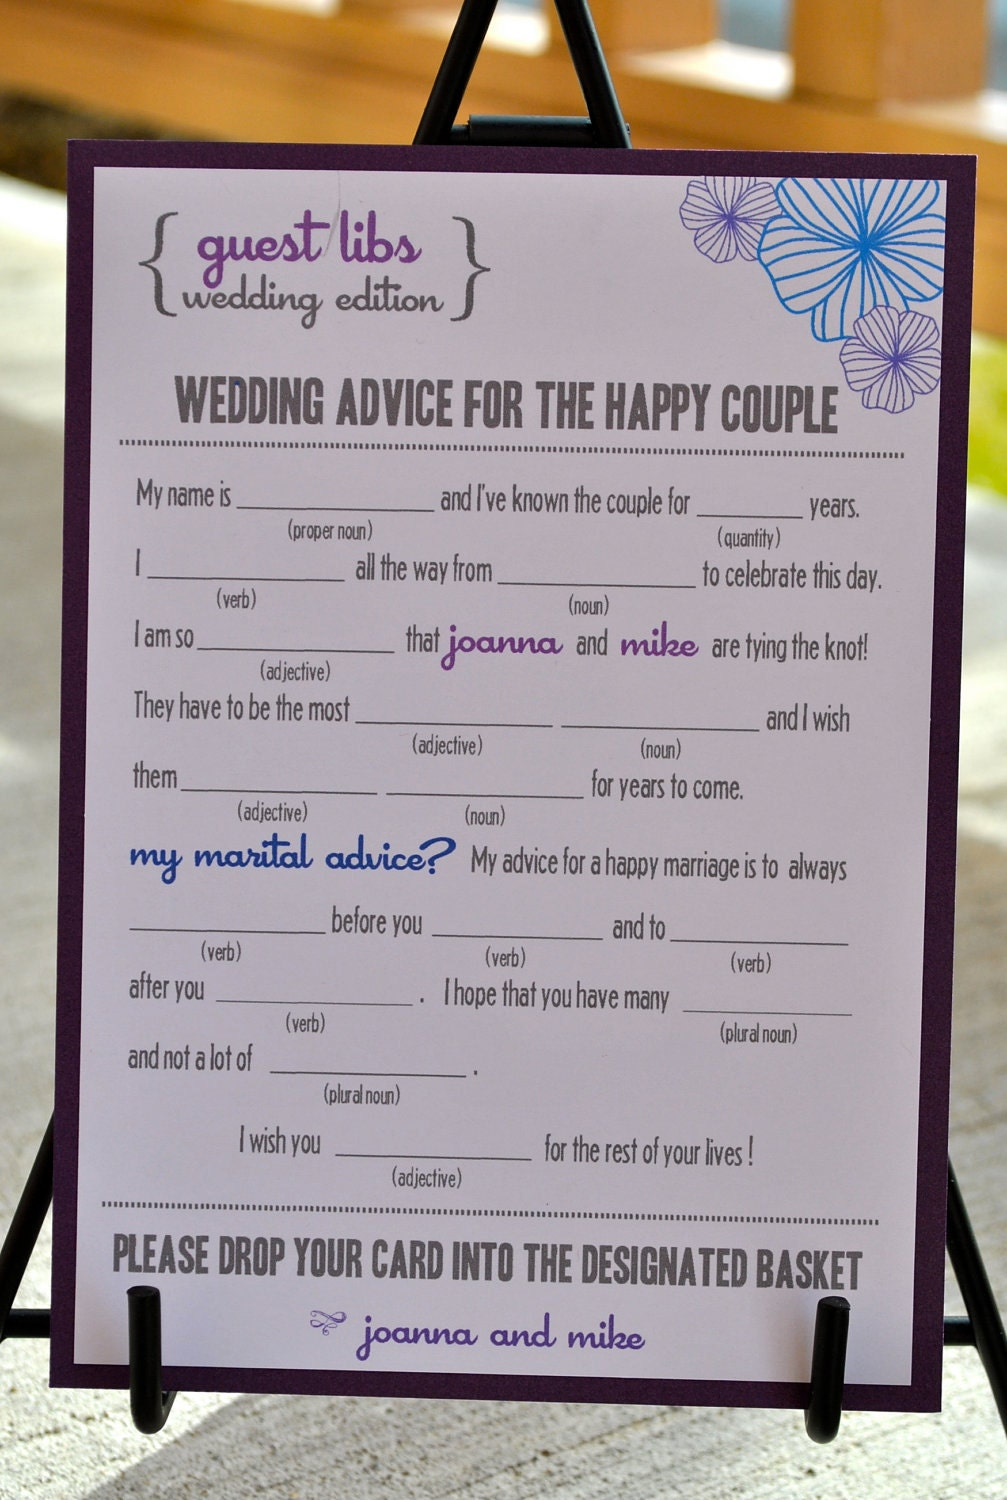 Free wedding guest mad libs template dbtopp for Guest libs wedding edition template